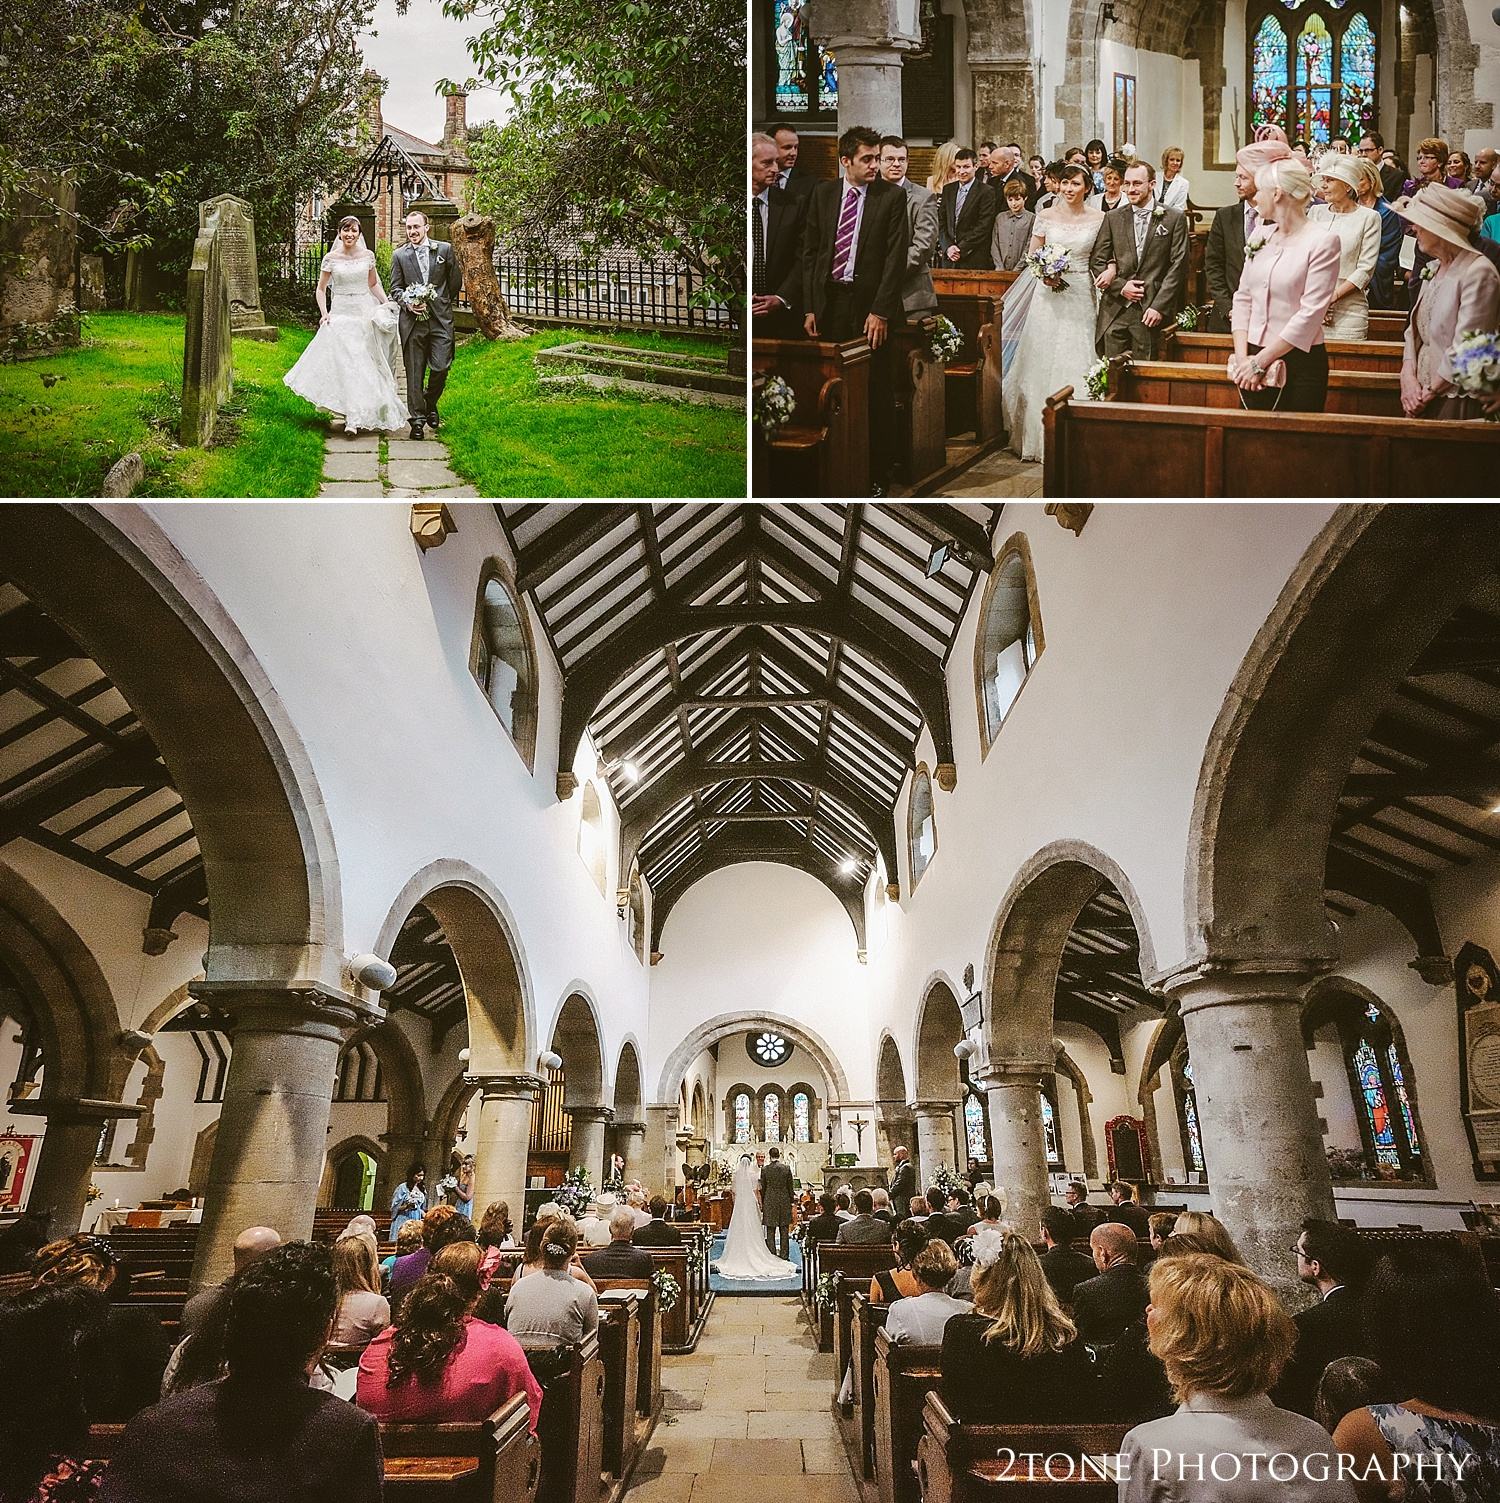 St Mary's Church and Eshott Hall wedding photography by www.2tonephotography.co.uk